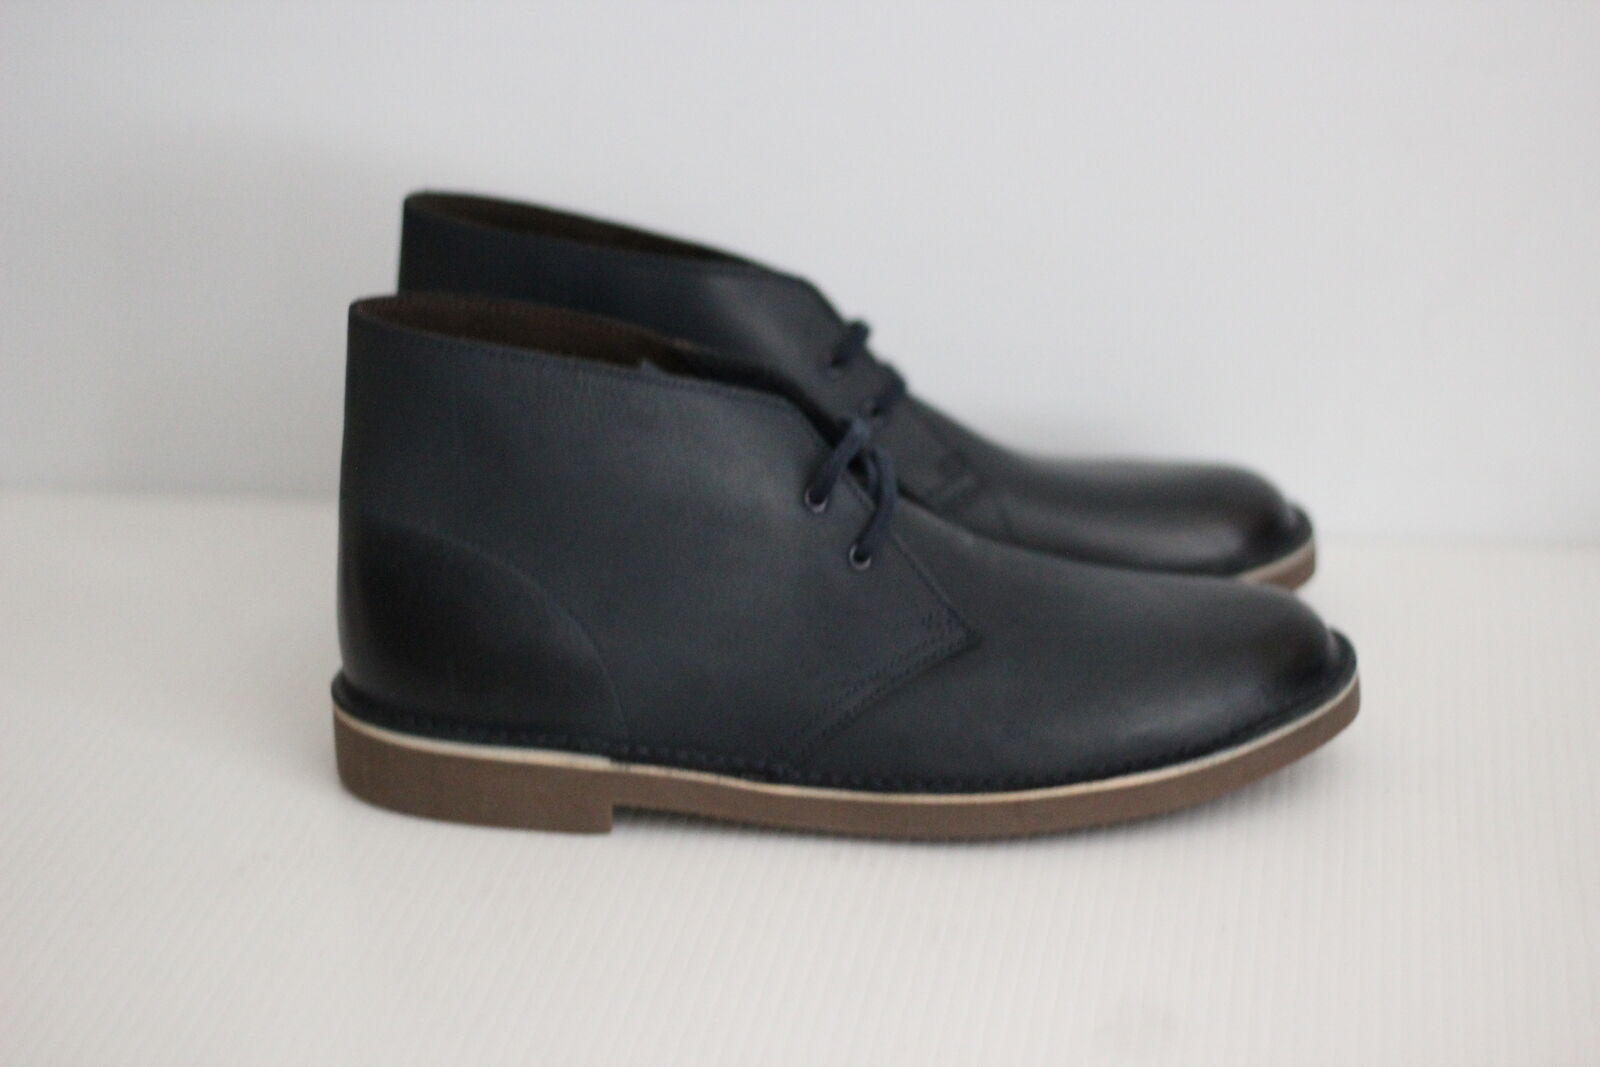 NEW Clarks Bushacre 2 Chukka Boot - Navy Blue Leather - Size 11 US  (L11)